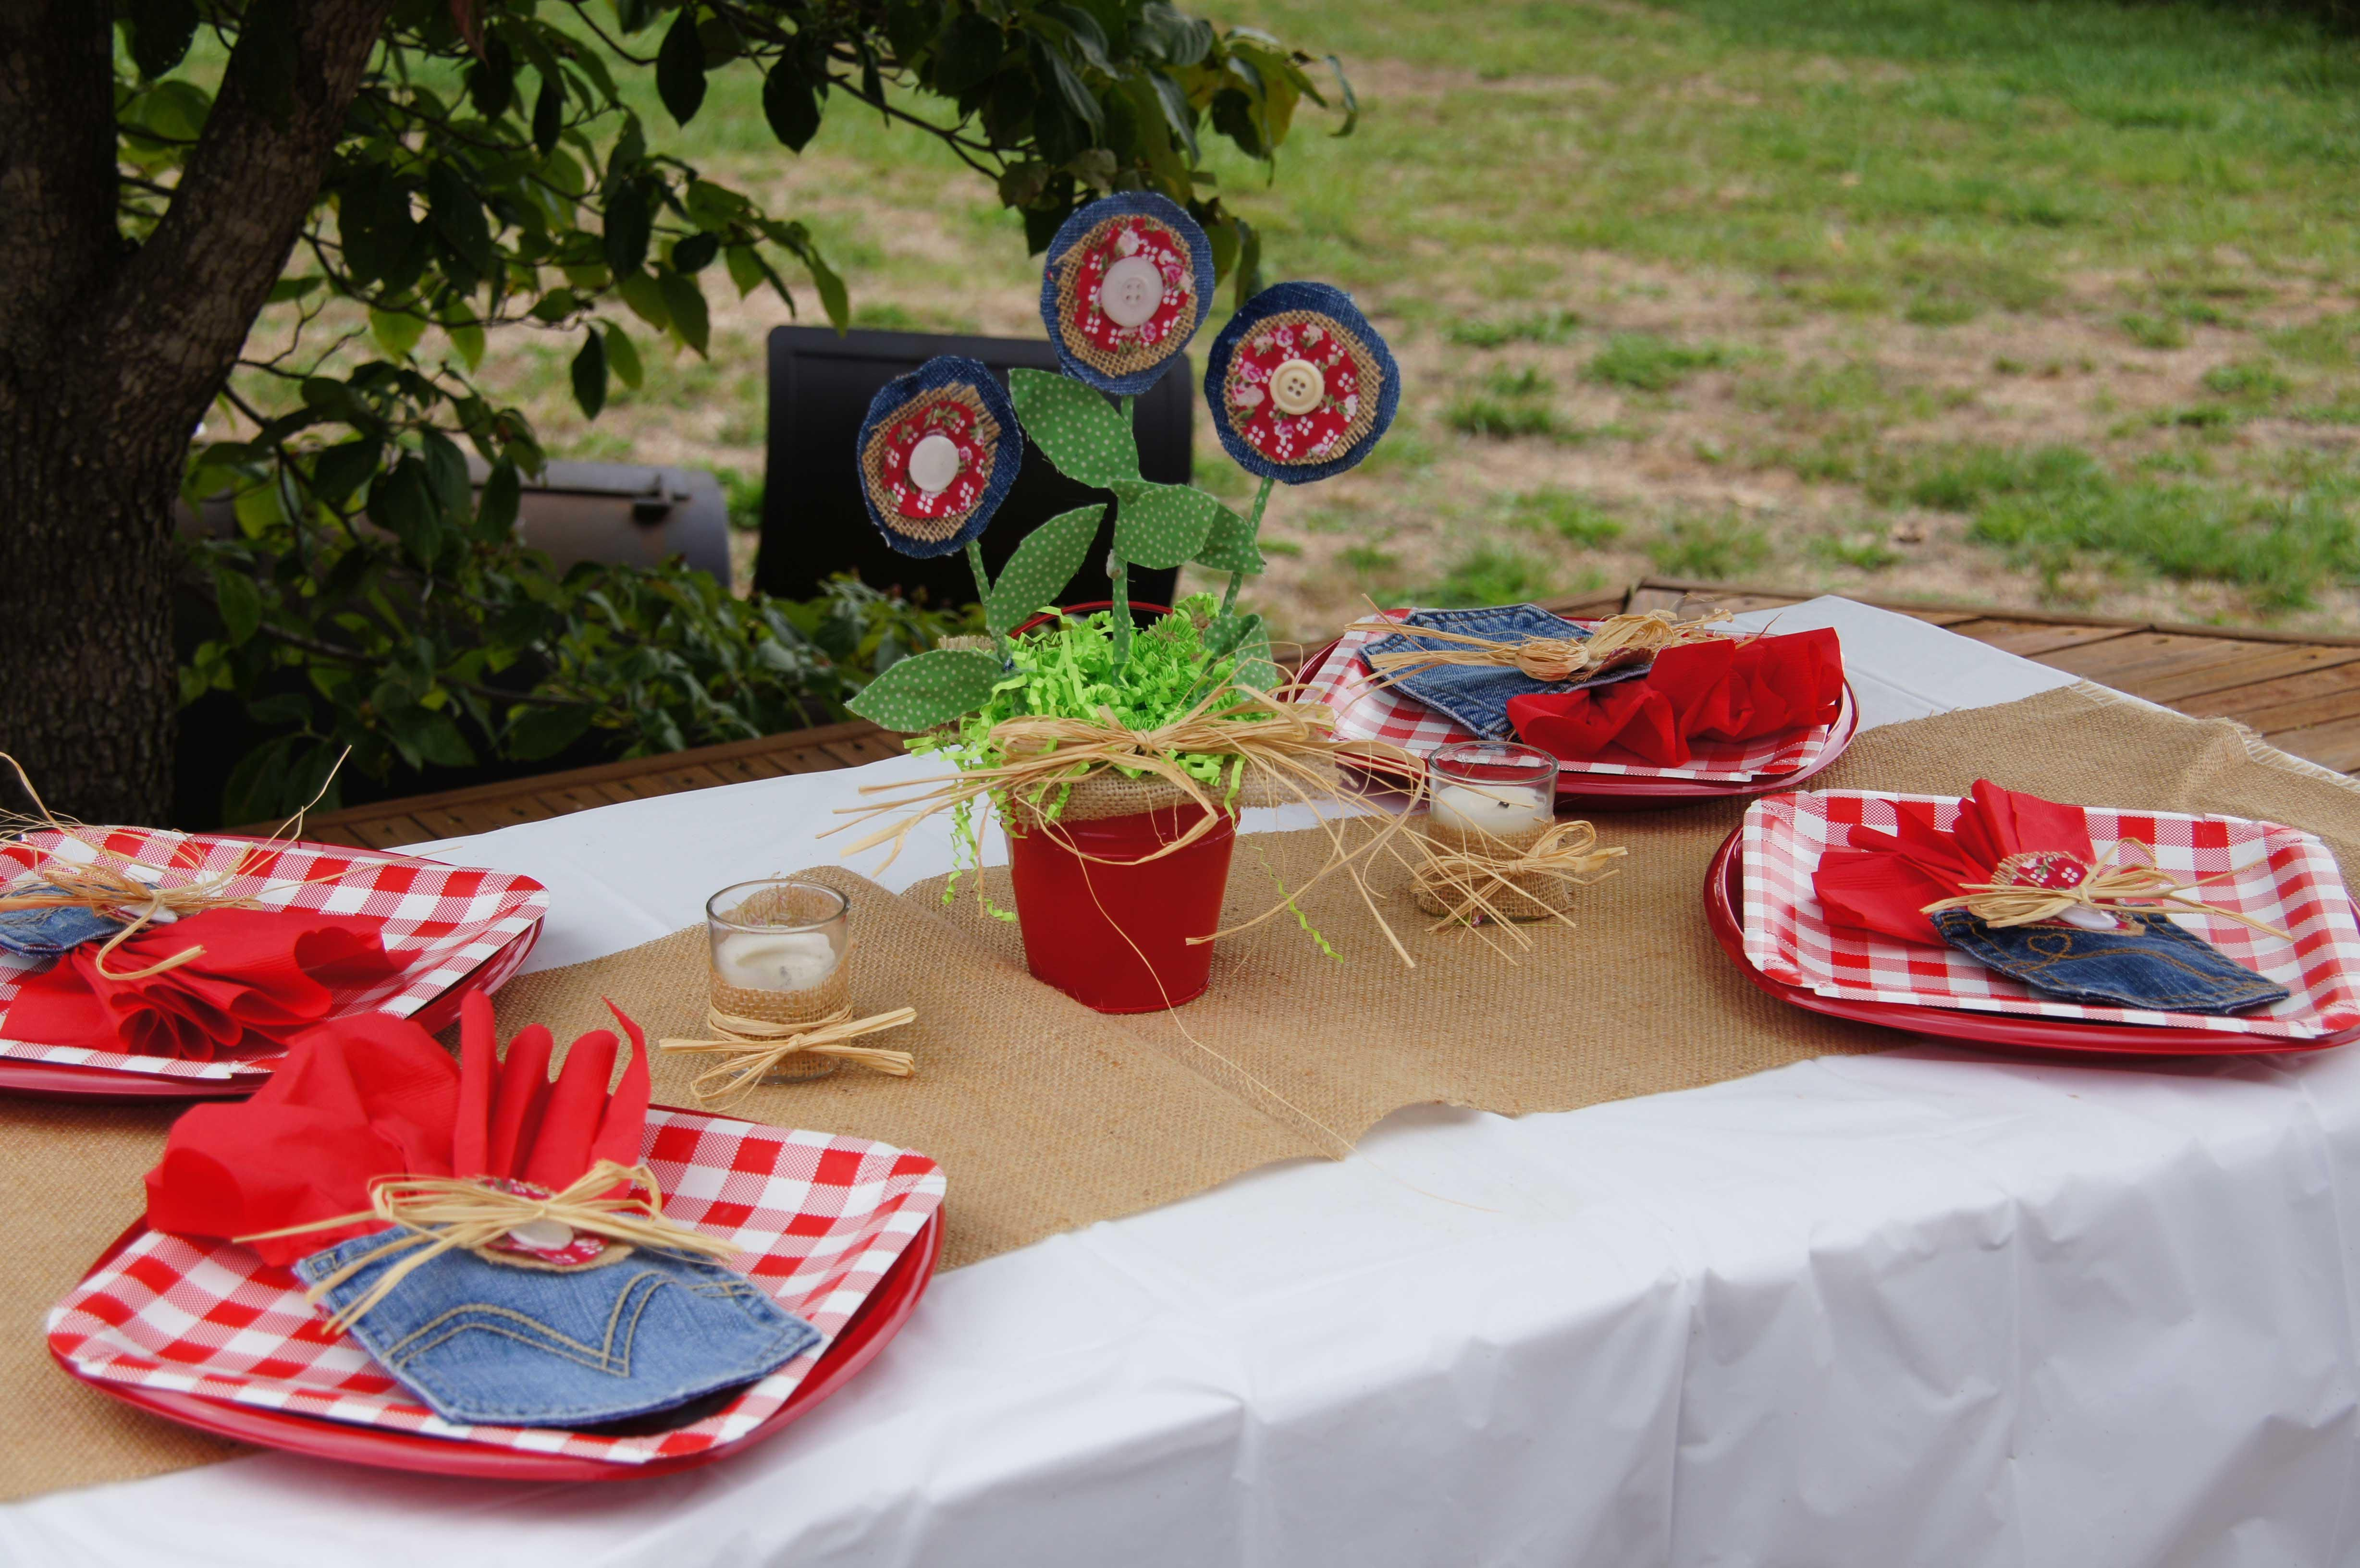 Backyard Bbq Decoration Ideas snack table details from a patriotic memorial day backyard bbq party via karas party ideas Backyard Bbq Party Decorating Ideas